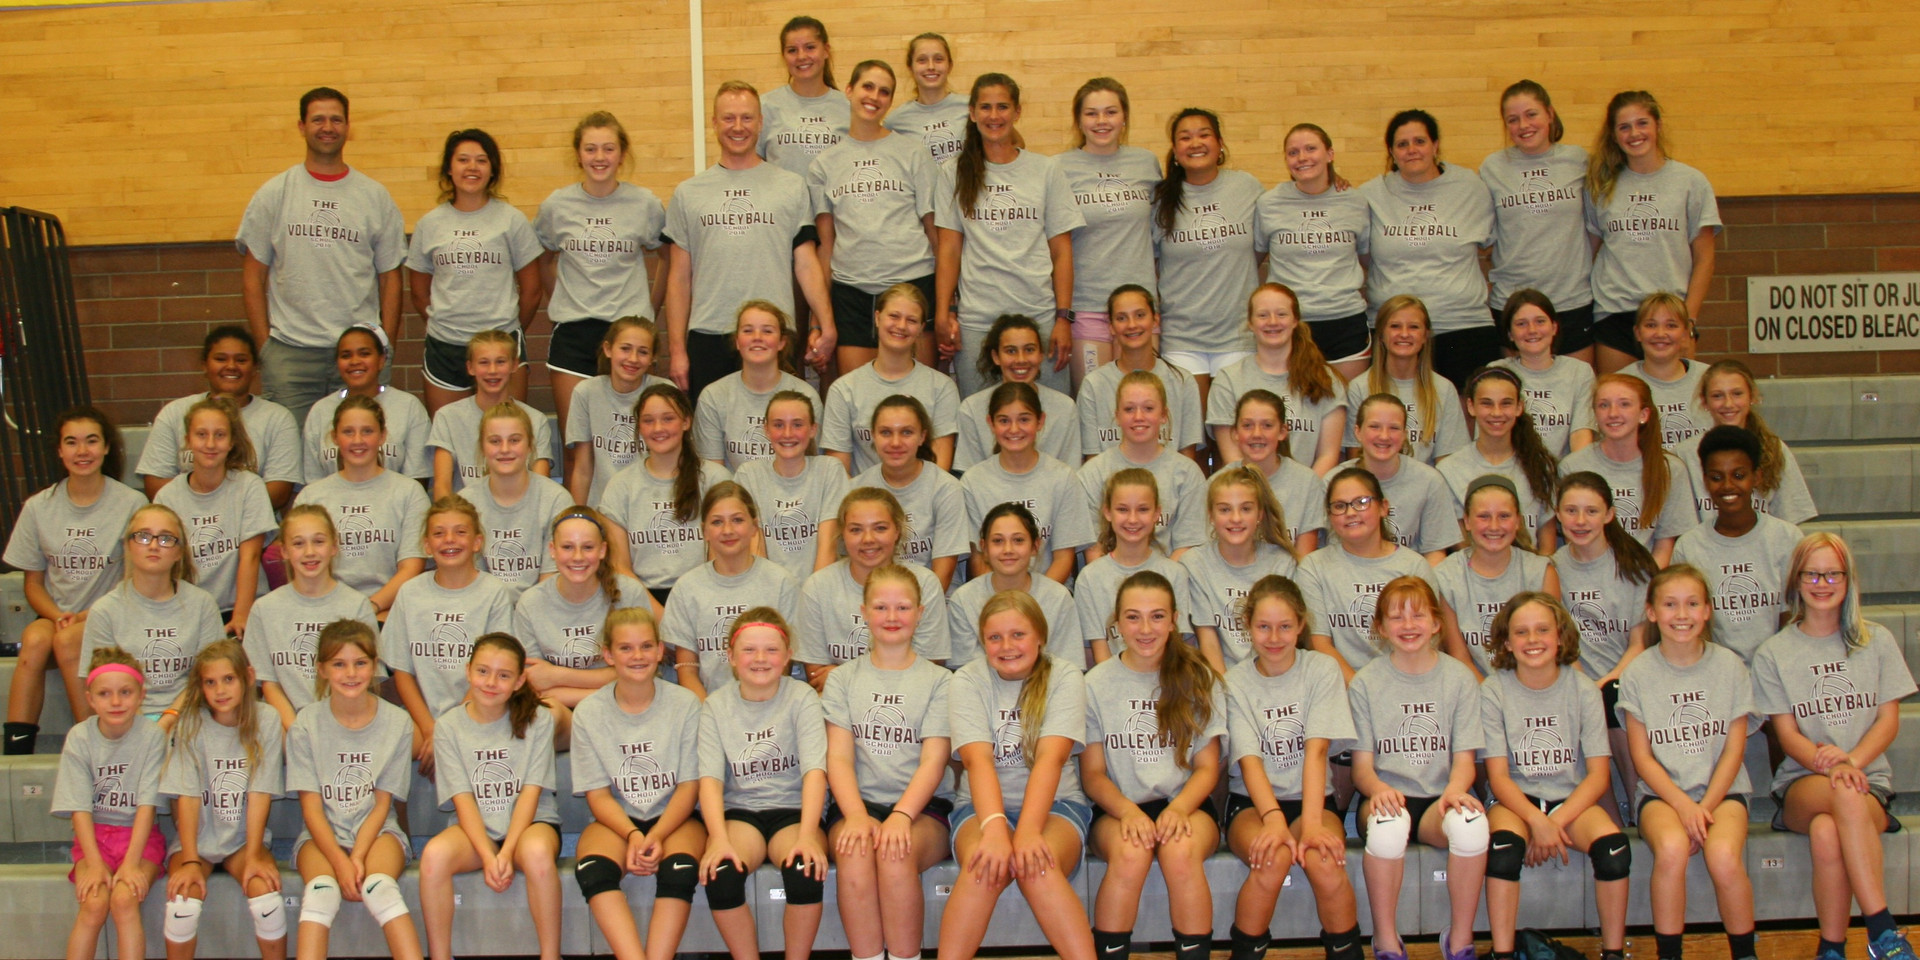 2018 Volleyball School - MS Camp